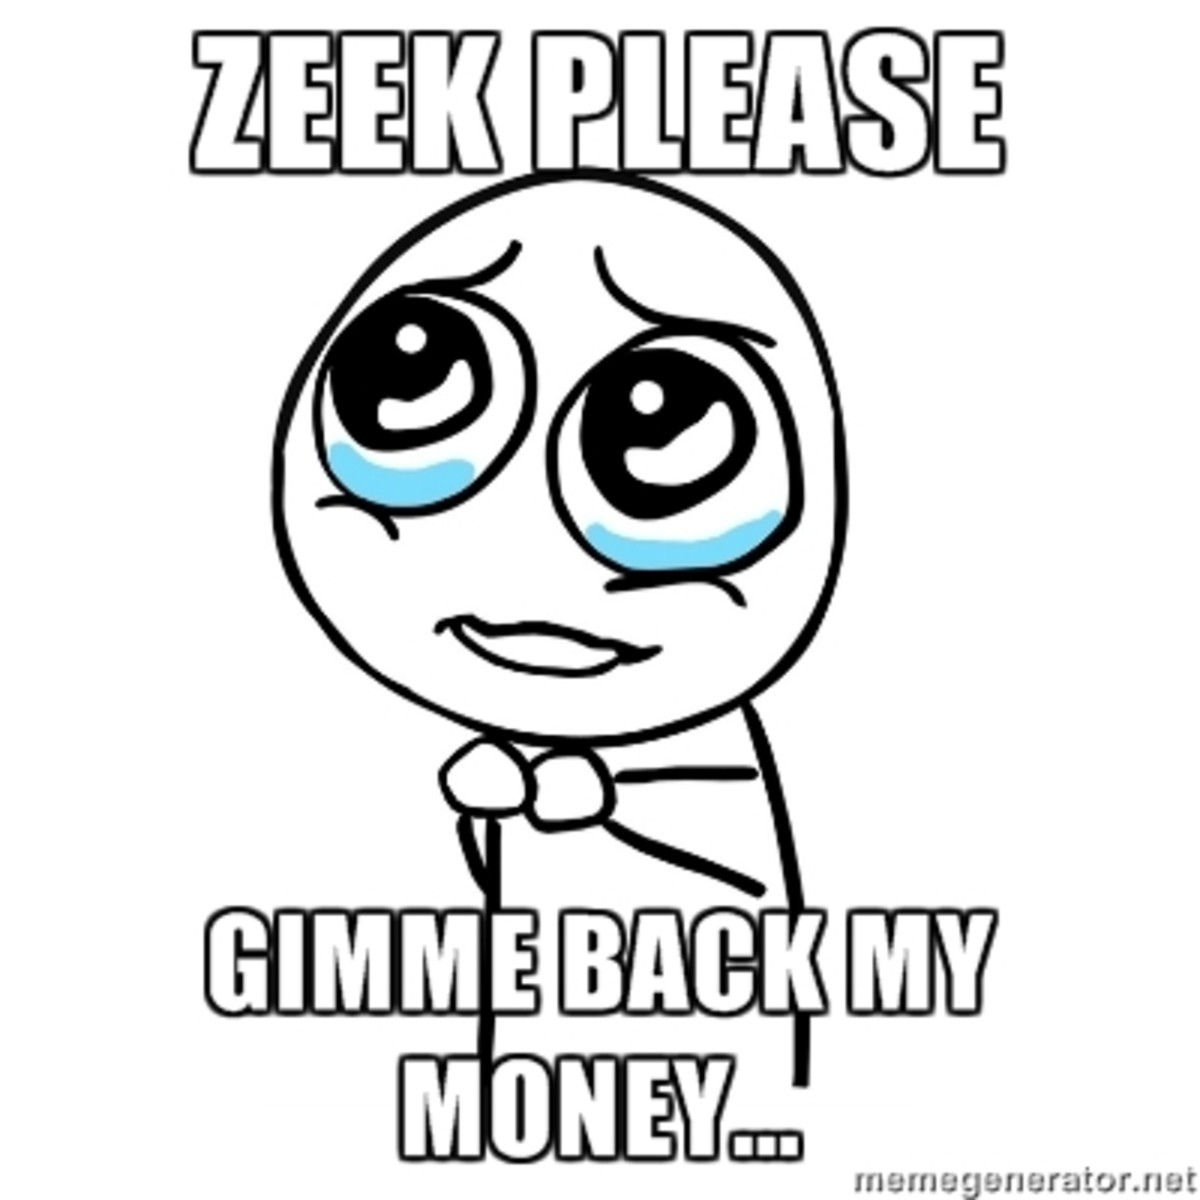 ZeekRewards Zeek Rewards Receivership Recovery Q&A, all sourced from news reports and experts, who is Robert Craddock?